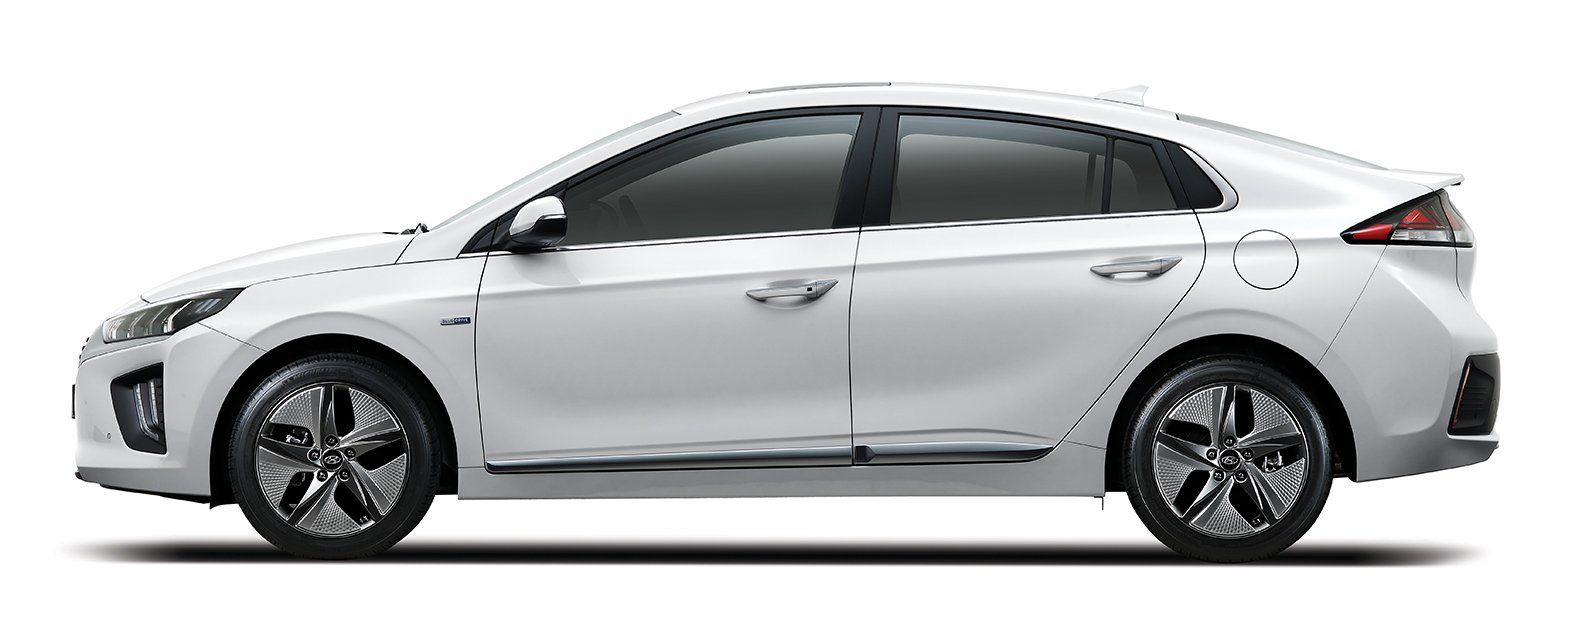 2020 Hyundai Ioniq Facelift Debuts With Styling And Tech Updates Carscoops Hyundai Tech Updates Facelift